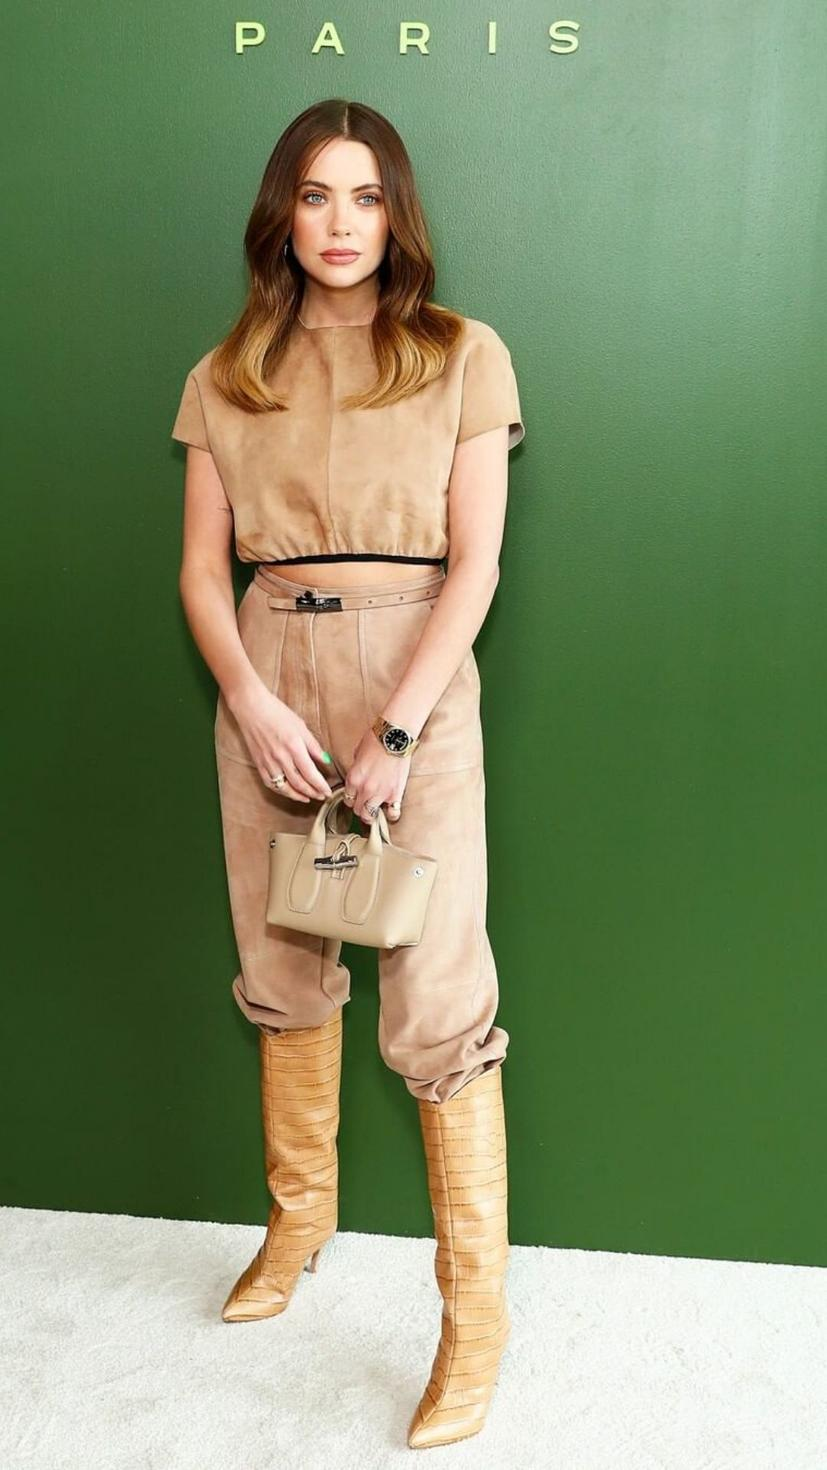 Ashley Benson attending Longchamp show wearing full outfit from the brand with matching boots from Schuts Maryana